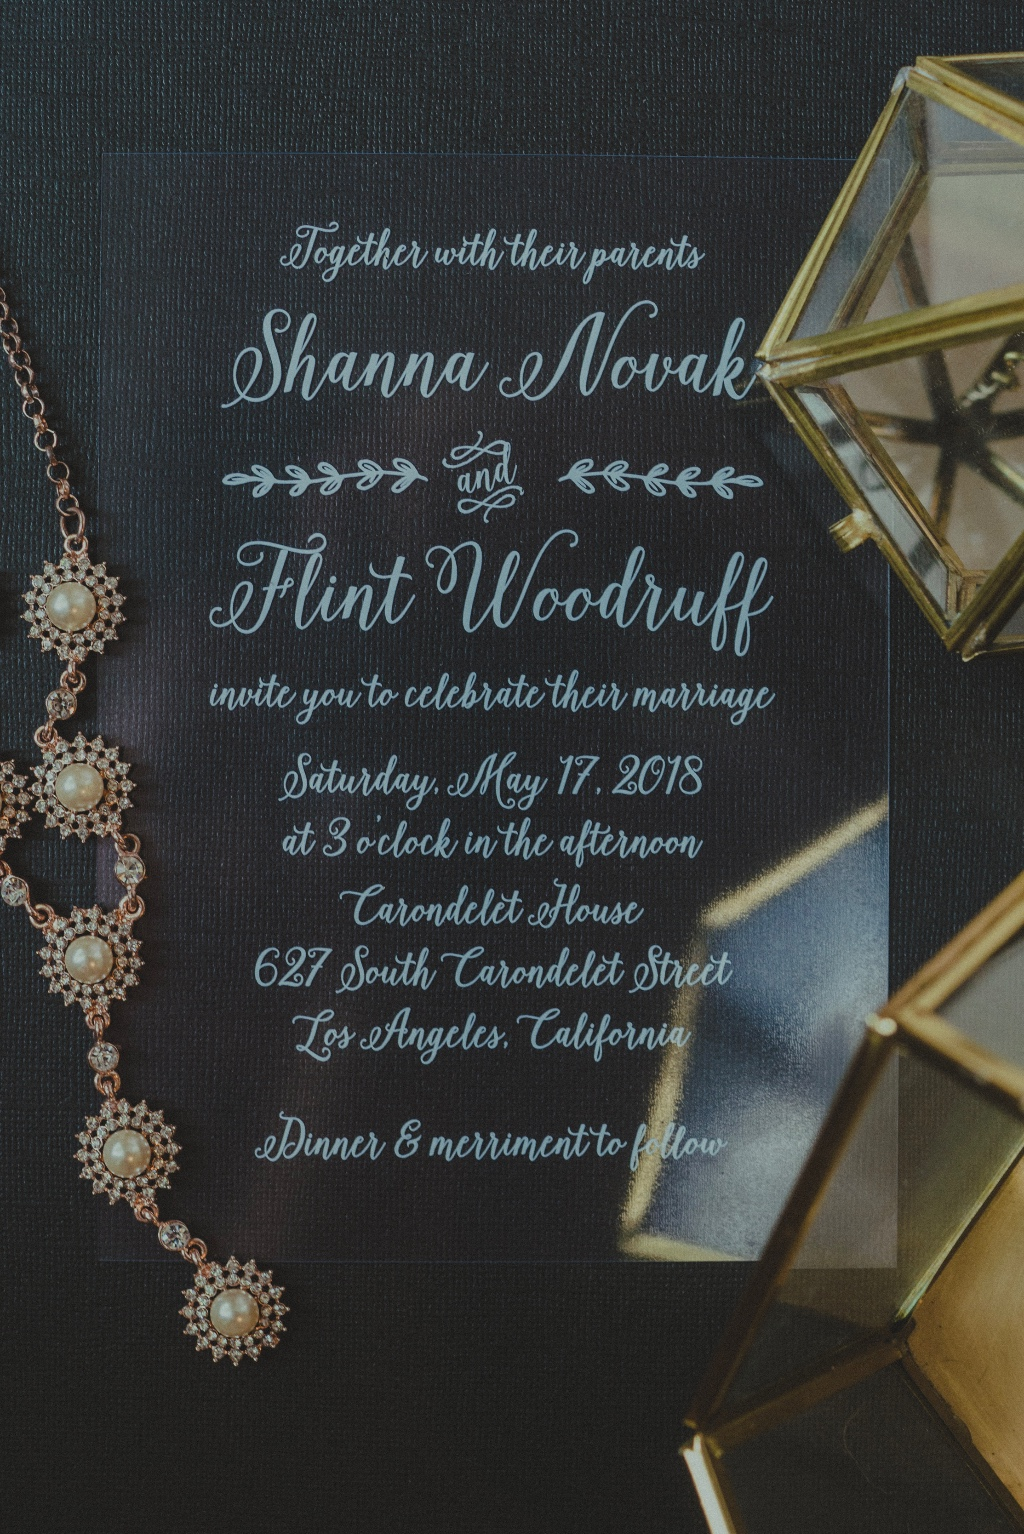 Clear wedding invitations give you the freedom to create any wedding decor and style you want!